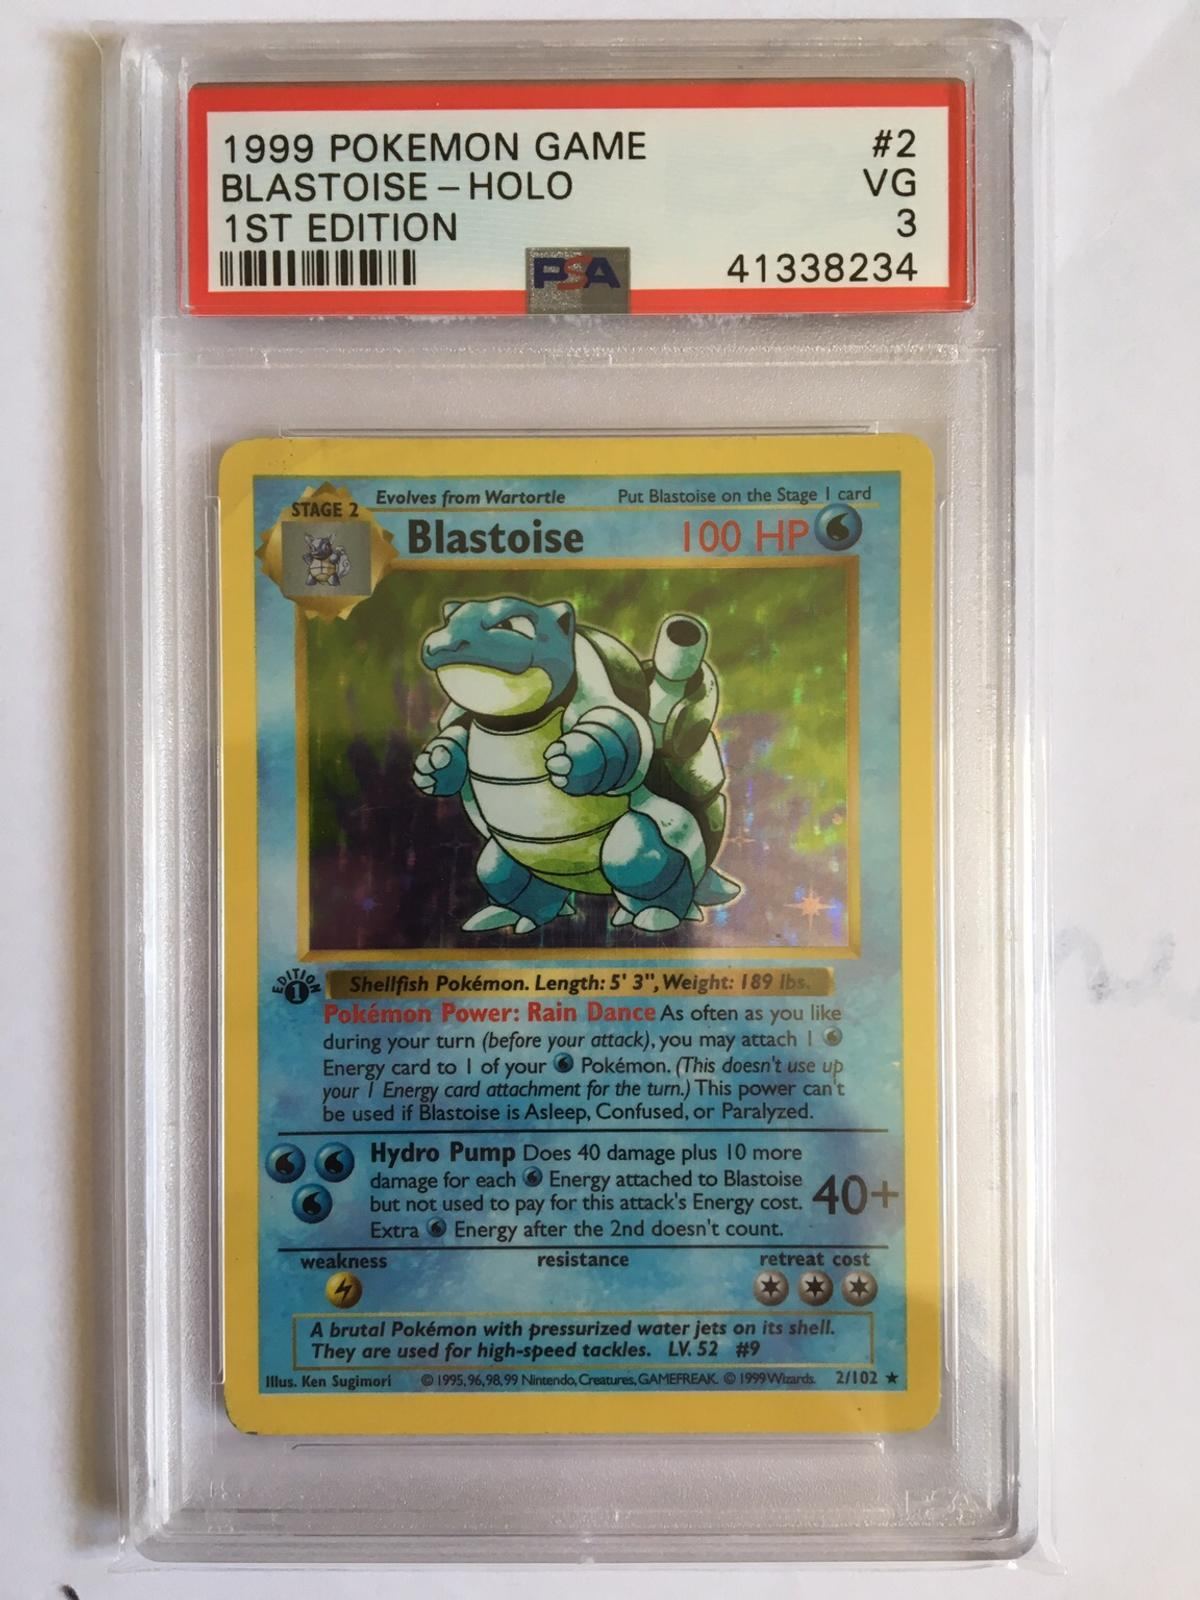 1st Edition pokemon Base set psa charizard in TA21 Deane for